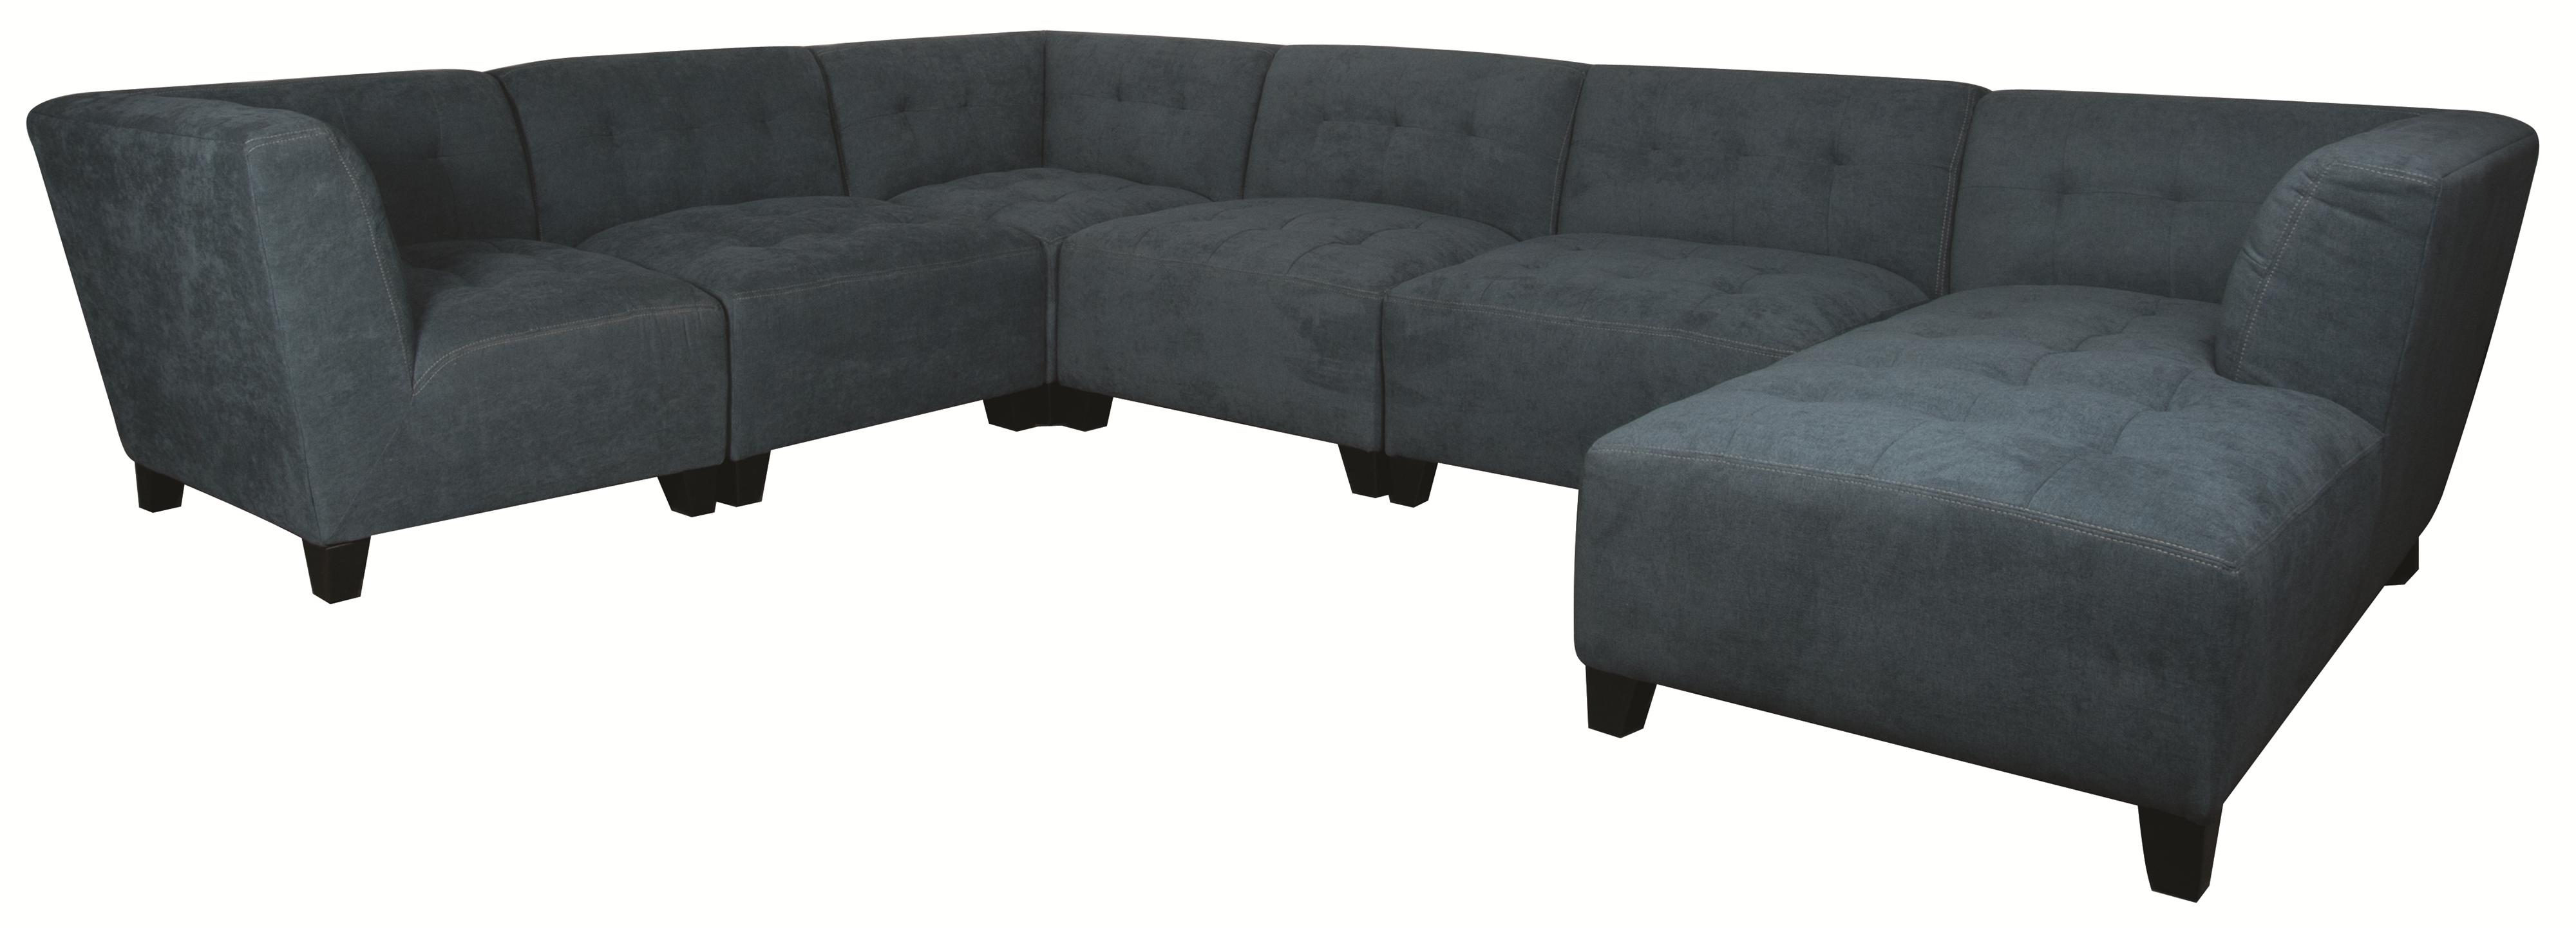 Santa Monica Emerson Emerson 6-Piece Sectional - Item Number: 148817820